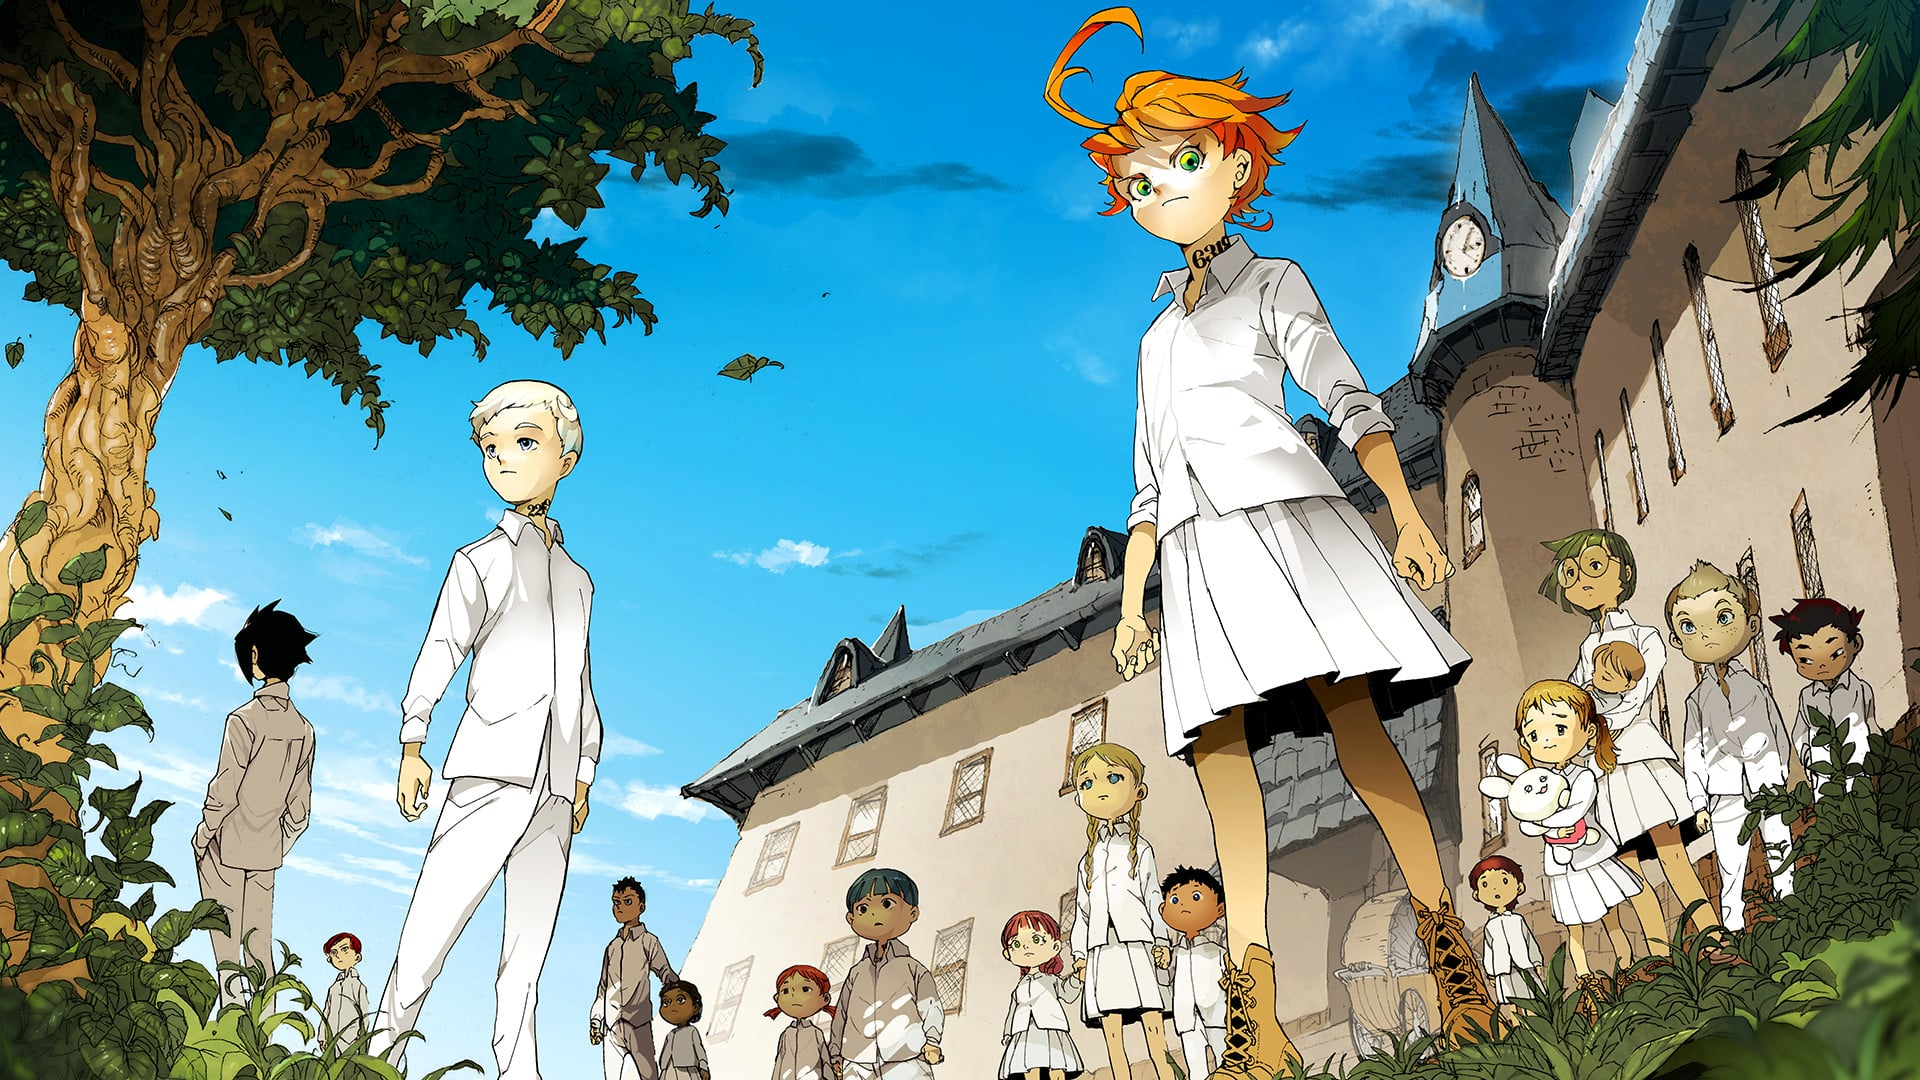 Annonce d'une série en Live Action pour l'anime The Promised Neverland